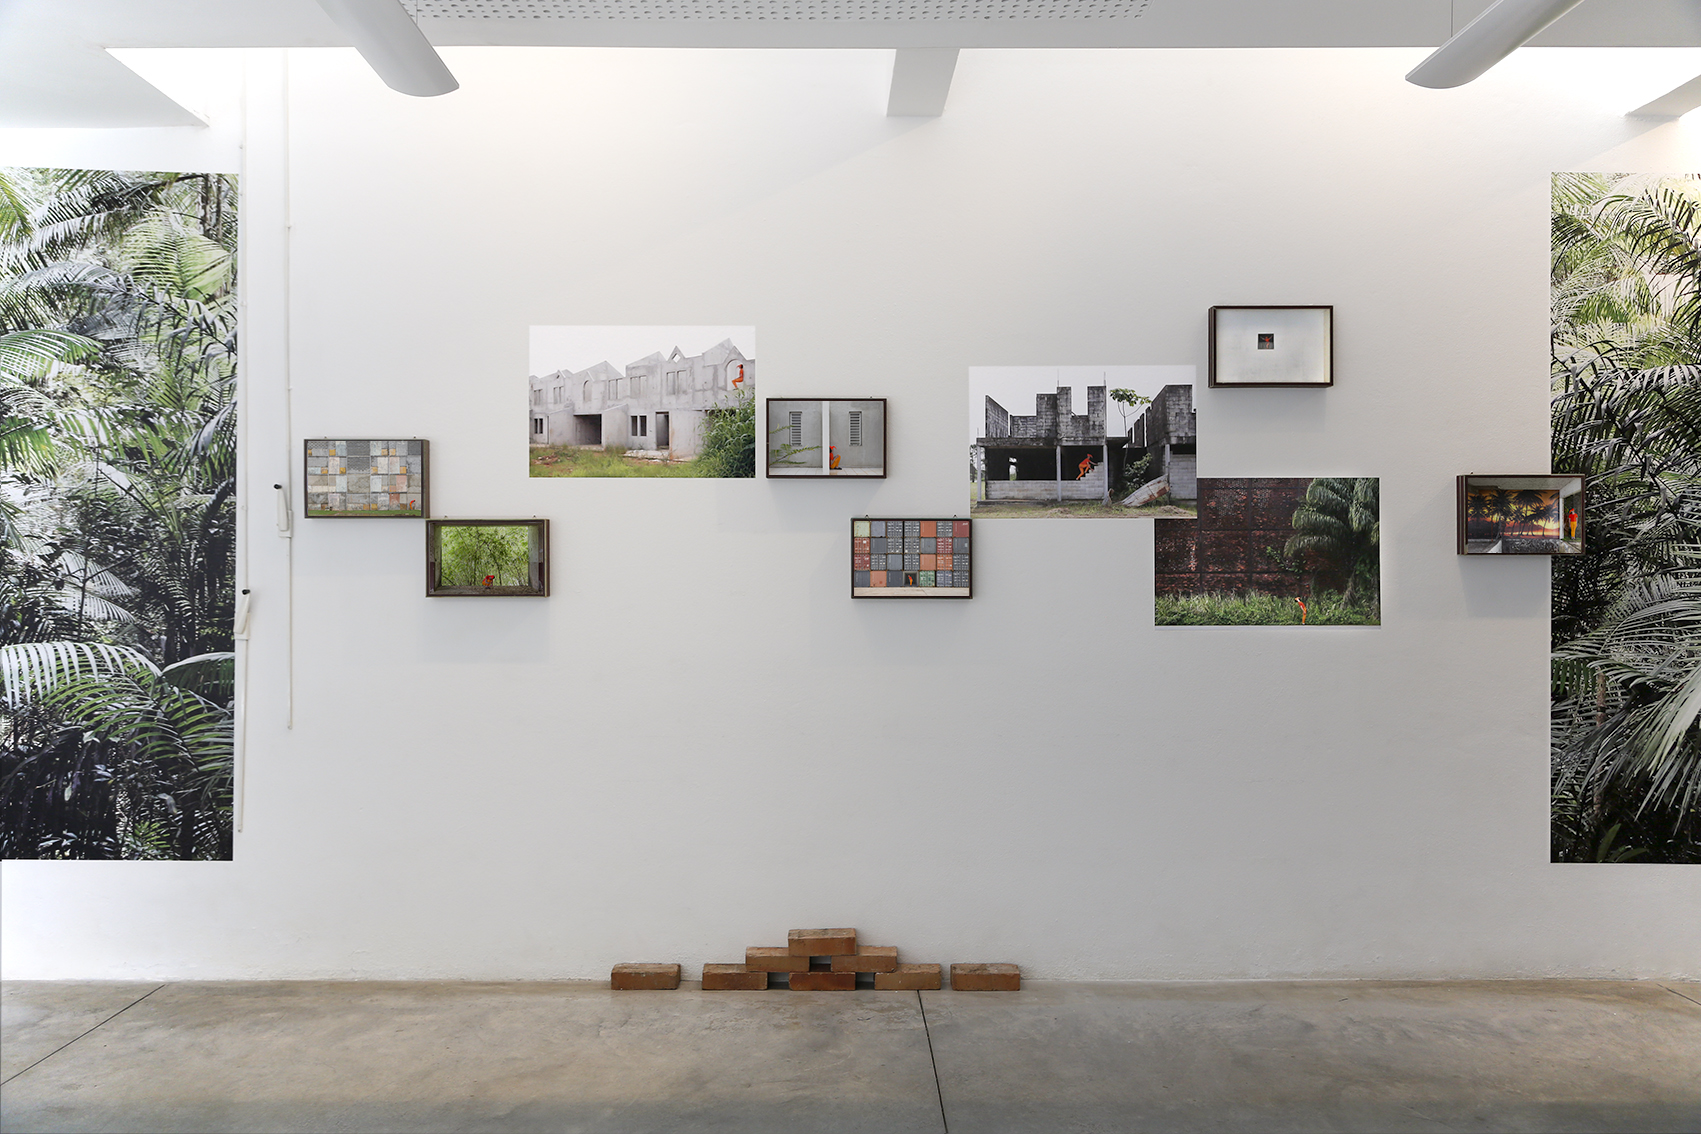 Exhibition view - Ibiscube - Pigment prints on enthomologic box and vinyl - House of architecture french Guiana - Biennial Les Rencontres photographiques - nov. 2017